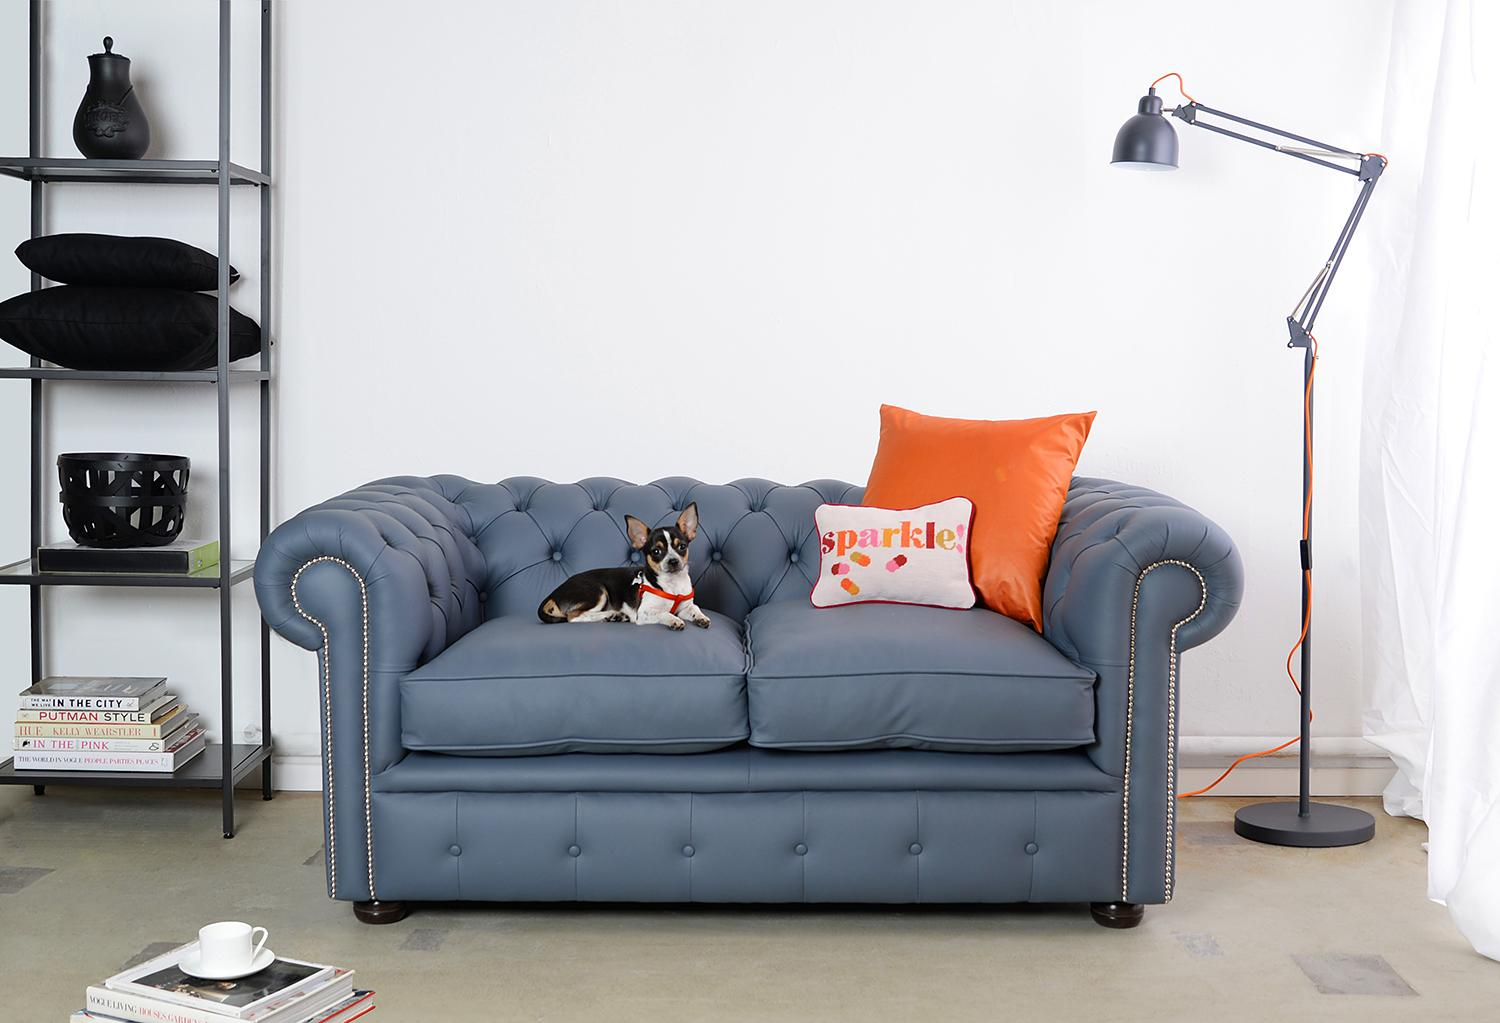 Wilmowsky Sofa Von Wilmowsky Sofa Von Wilmowsky Chesterfield Sofa